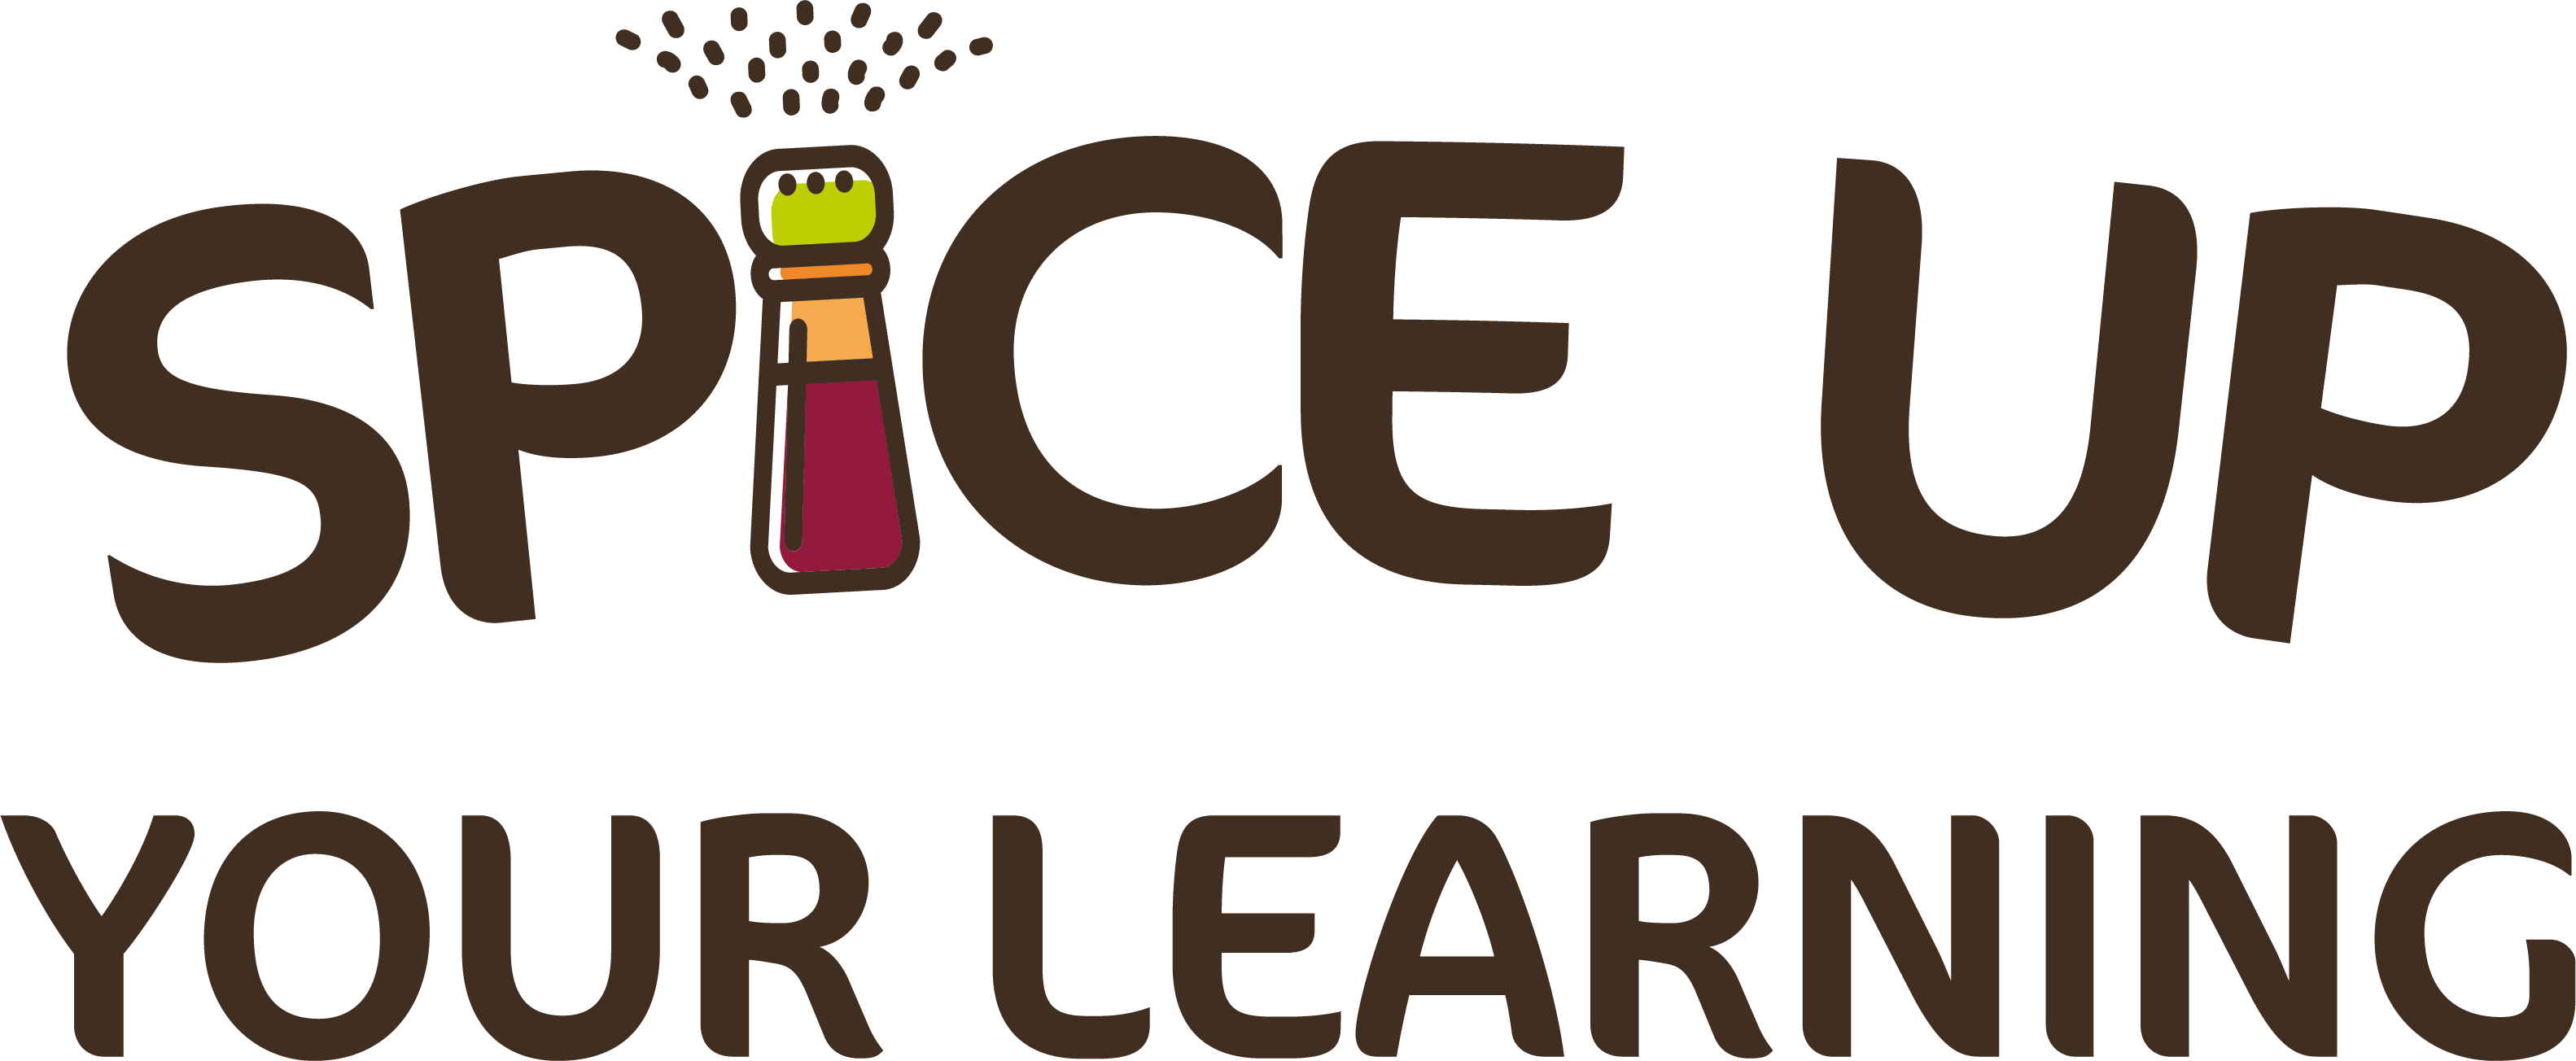 spice-up-your-learning.de